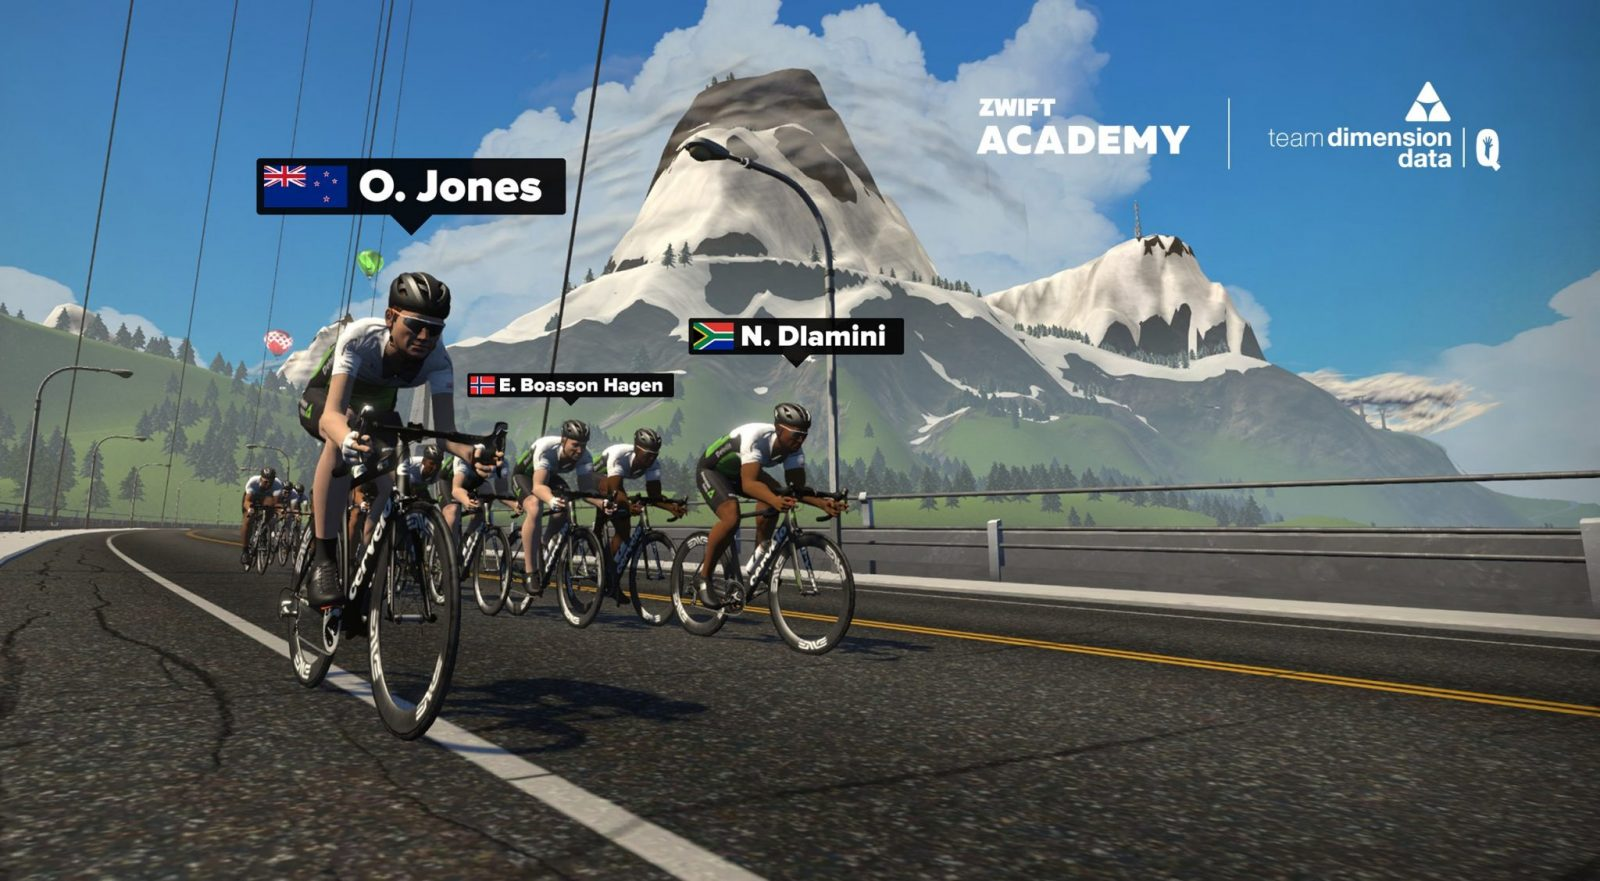 Zwift Academy 2018 Semi-Finalists Announced